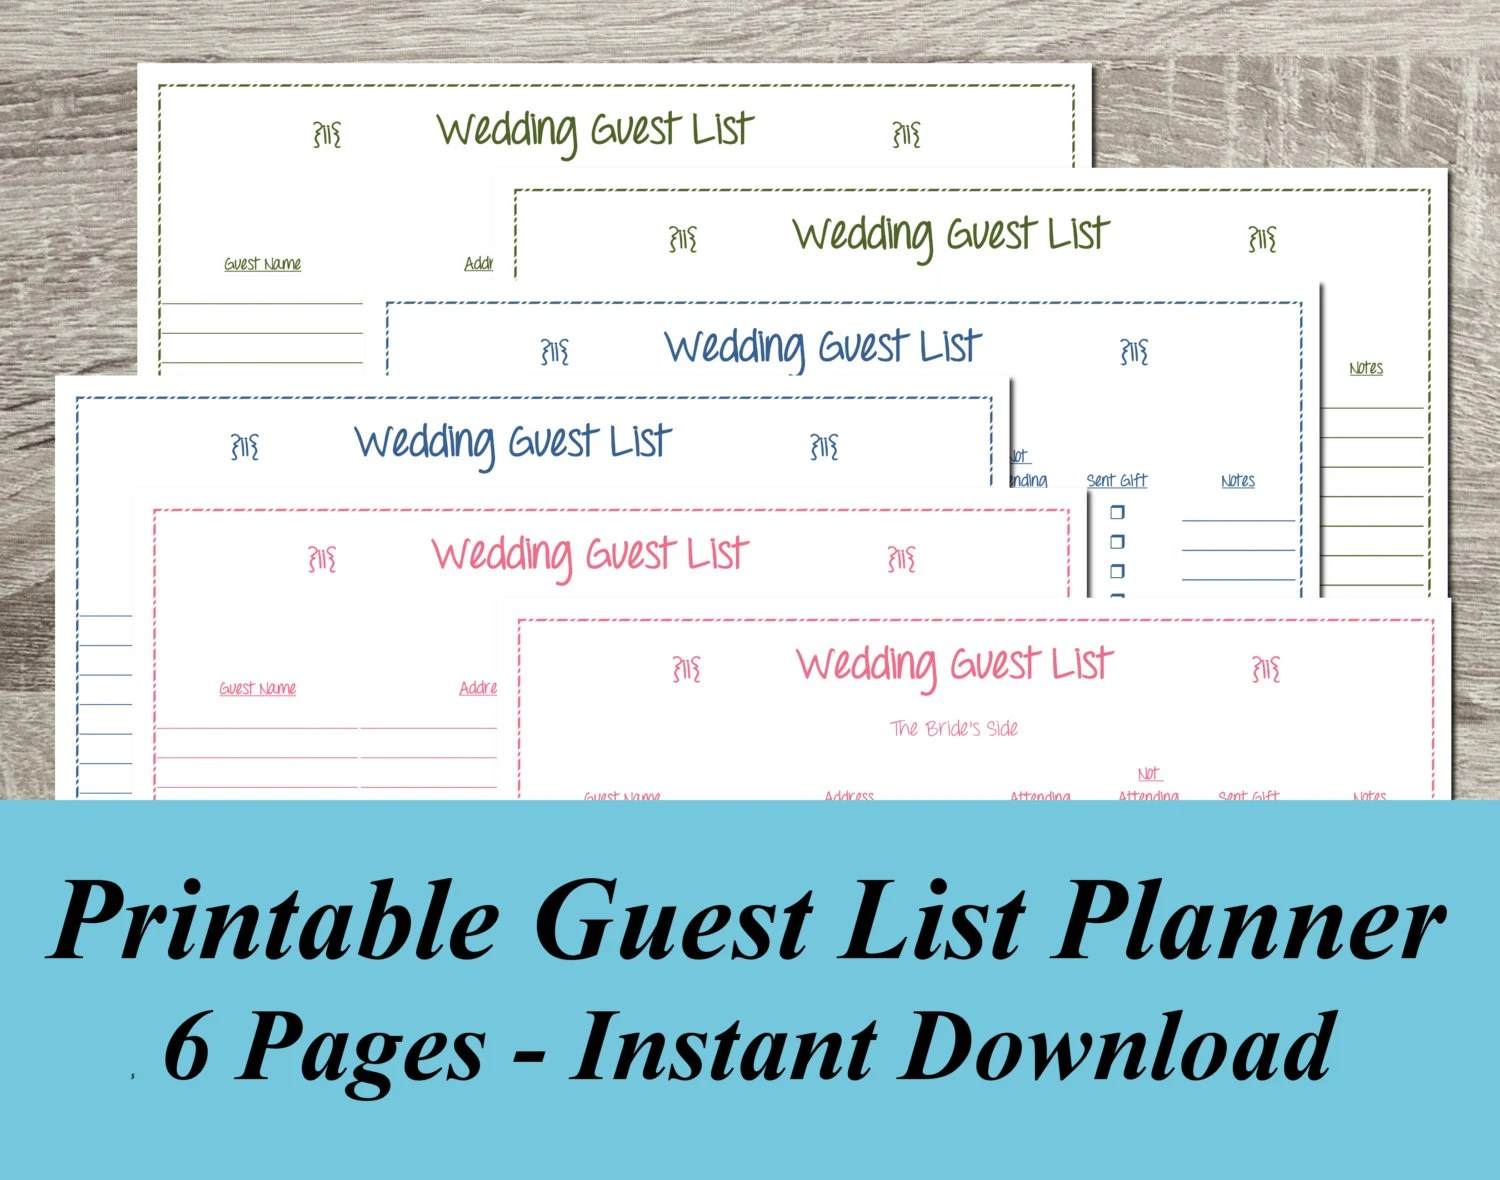 INSTANT DOWNLOAD Wedding Guest List PDF Wedding Planning - 6 Pages - free printable guest list